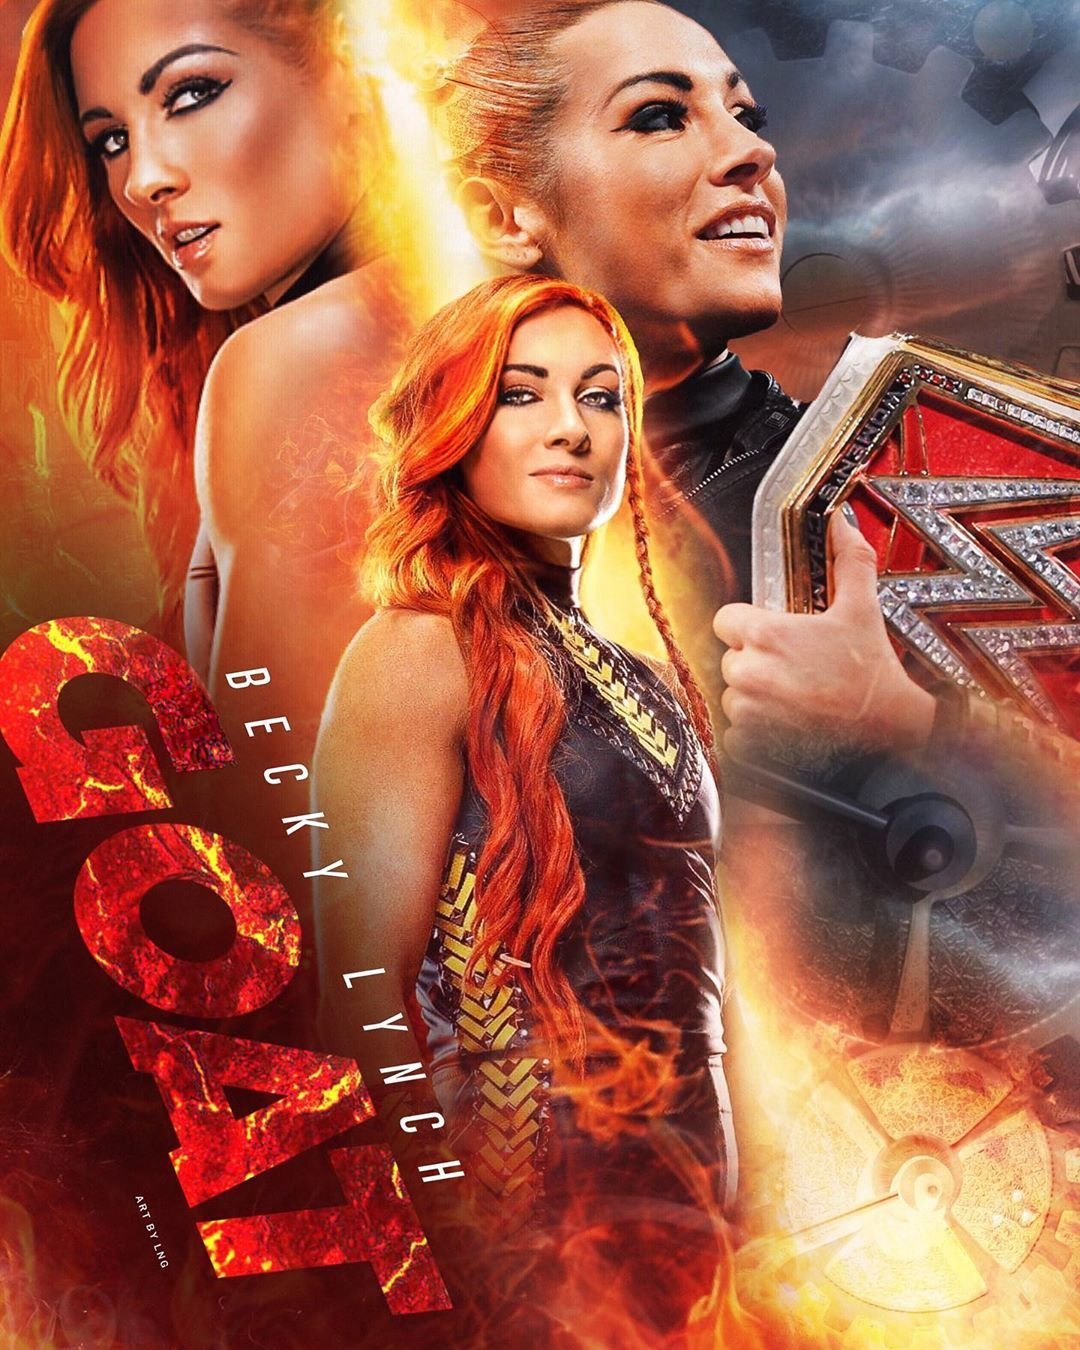 L N G On Instagram Would Y All Say That Becky Is The Greatest Women S Champion In Modern History Ww Becky Wwe Wwe Female Wrestlers Female Wrestlers